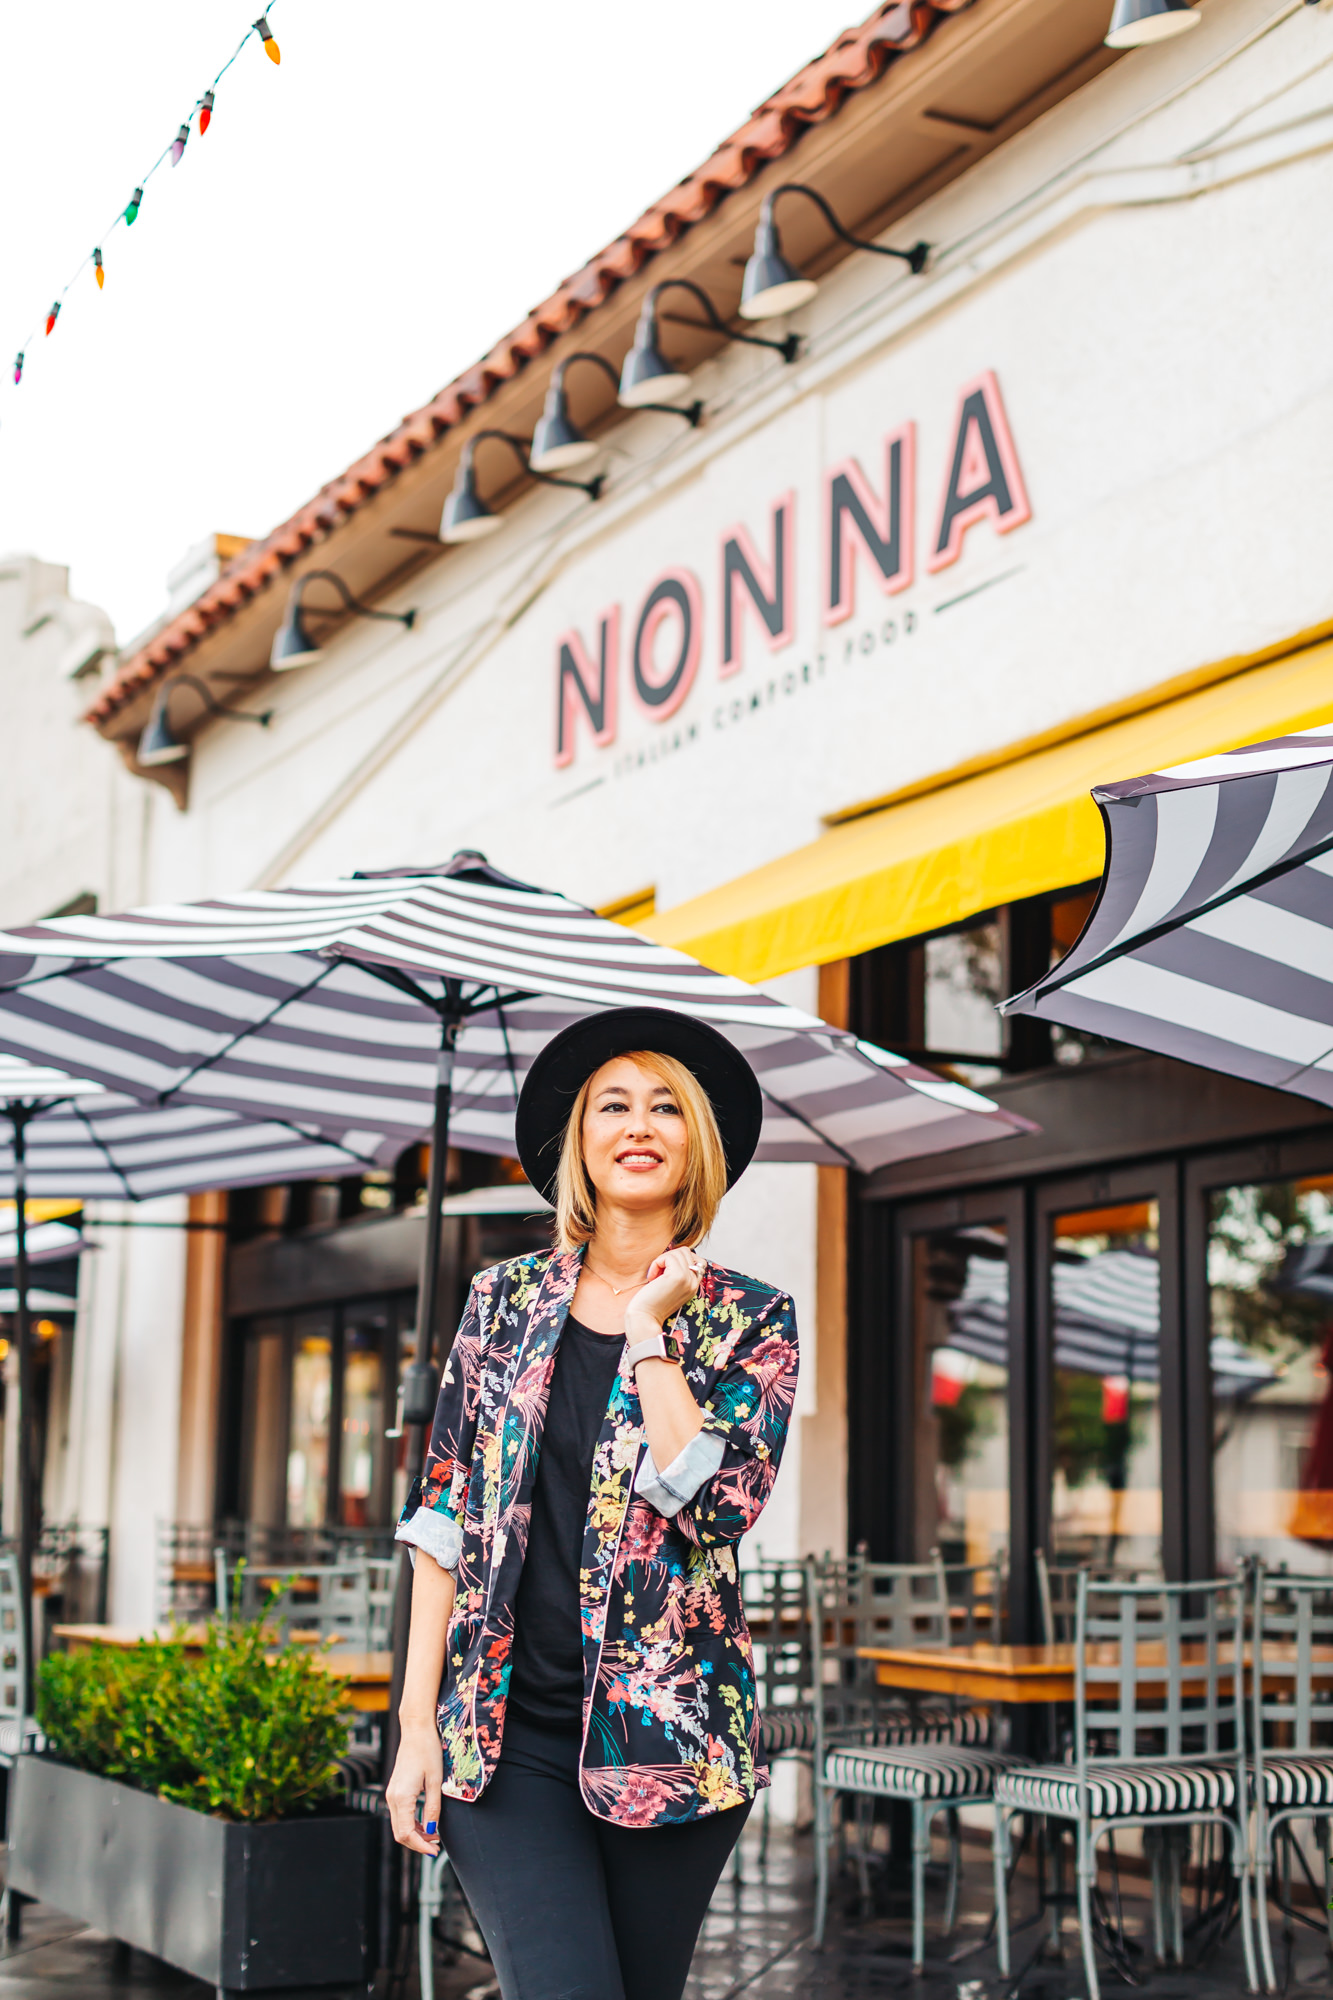 Seating both indoors and outdoors at Nonna + Zucchero